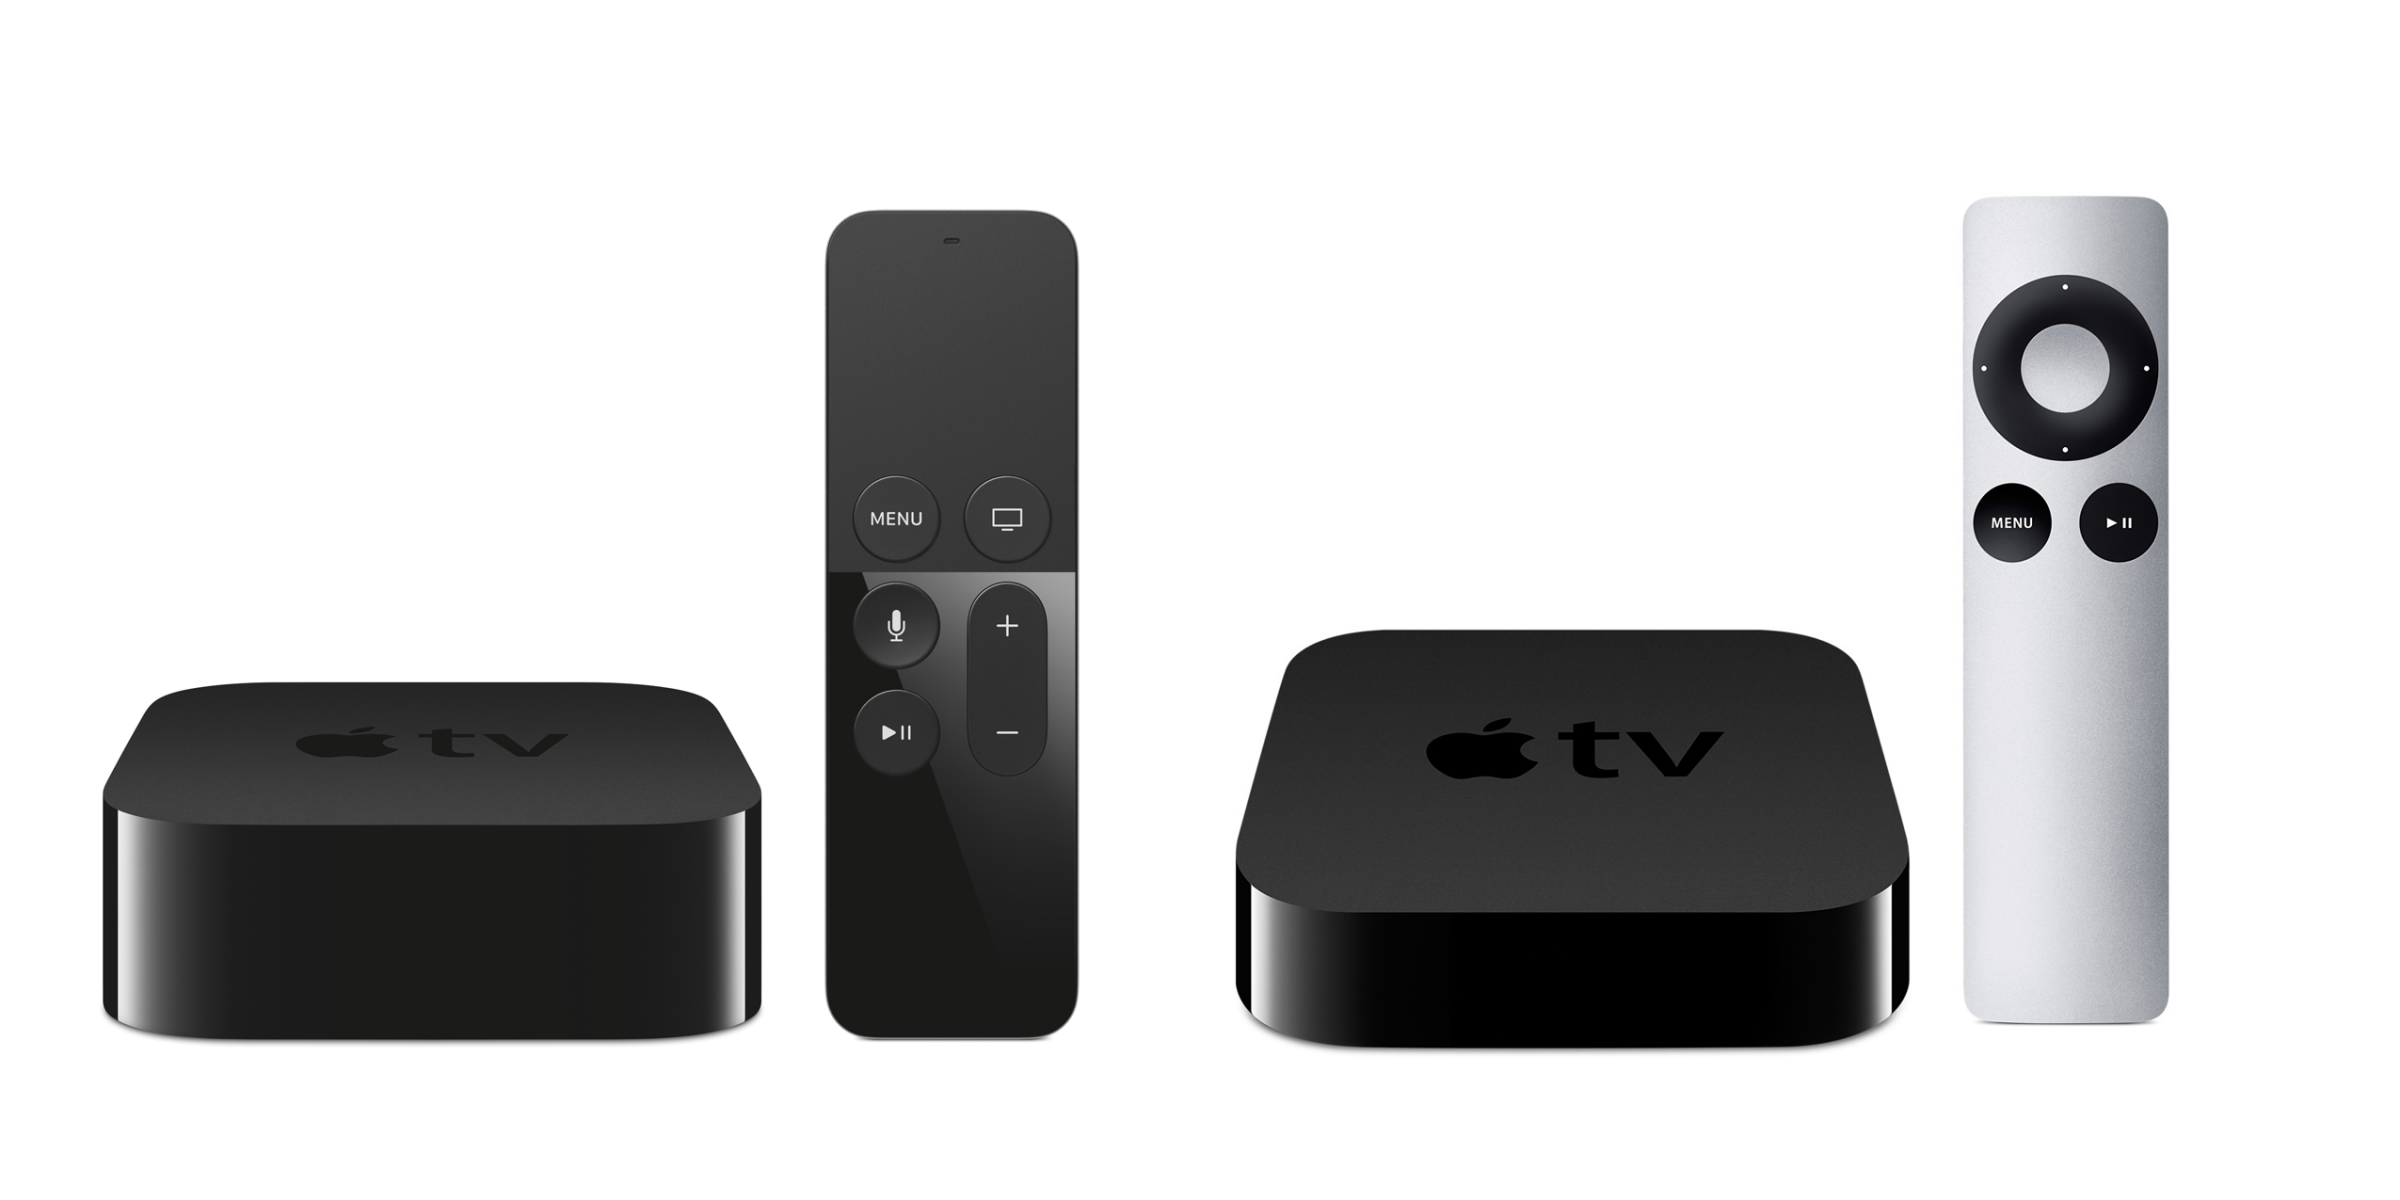 The newest Apple TV highlights a worrying trend across all